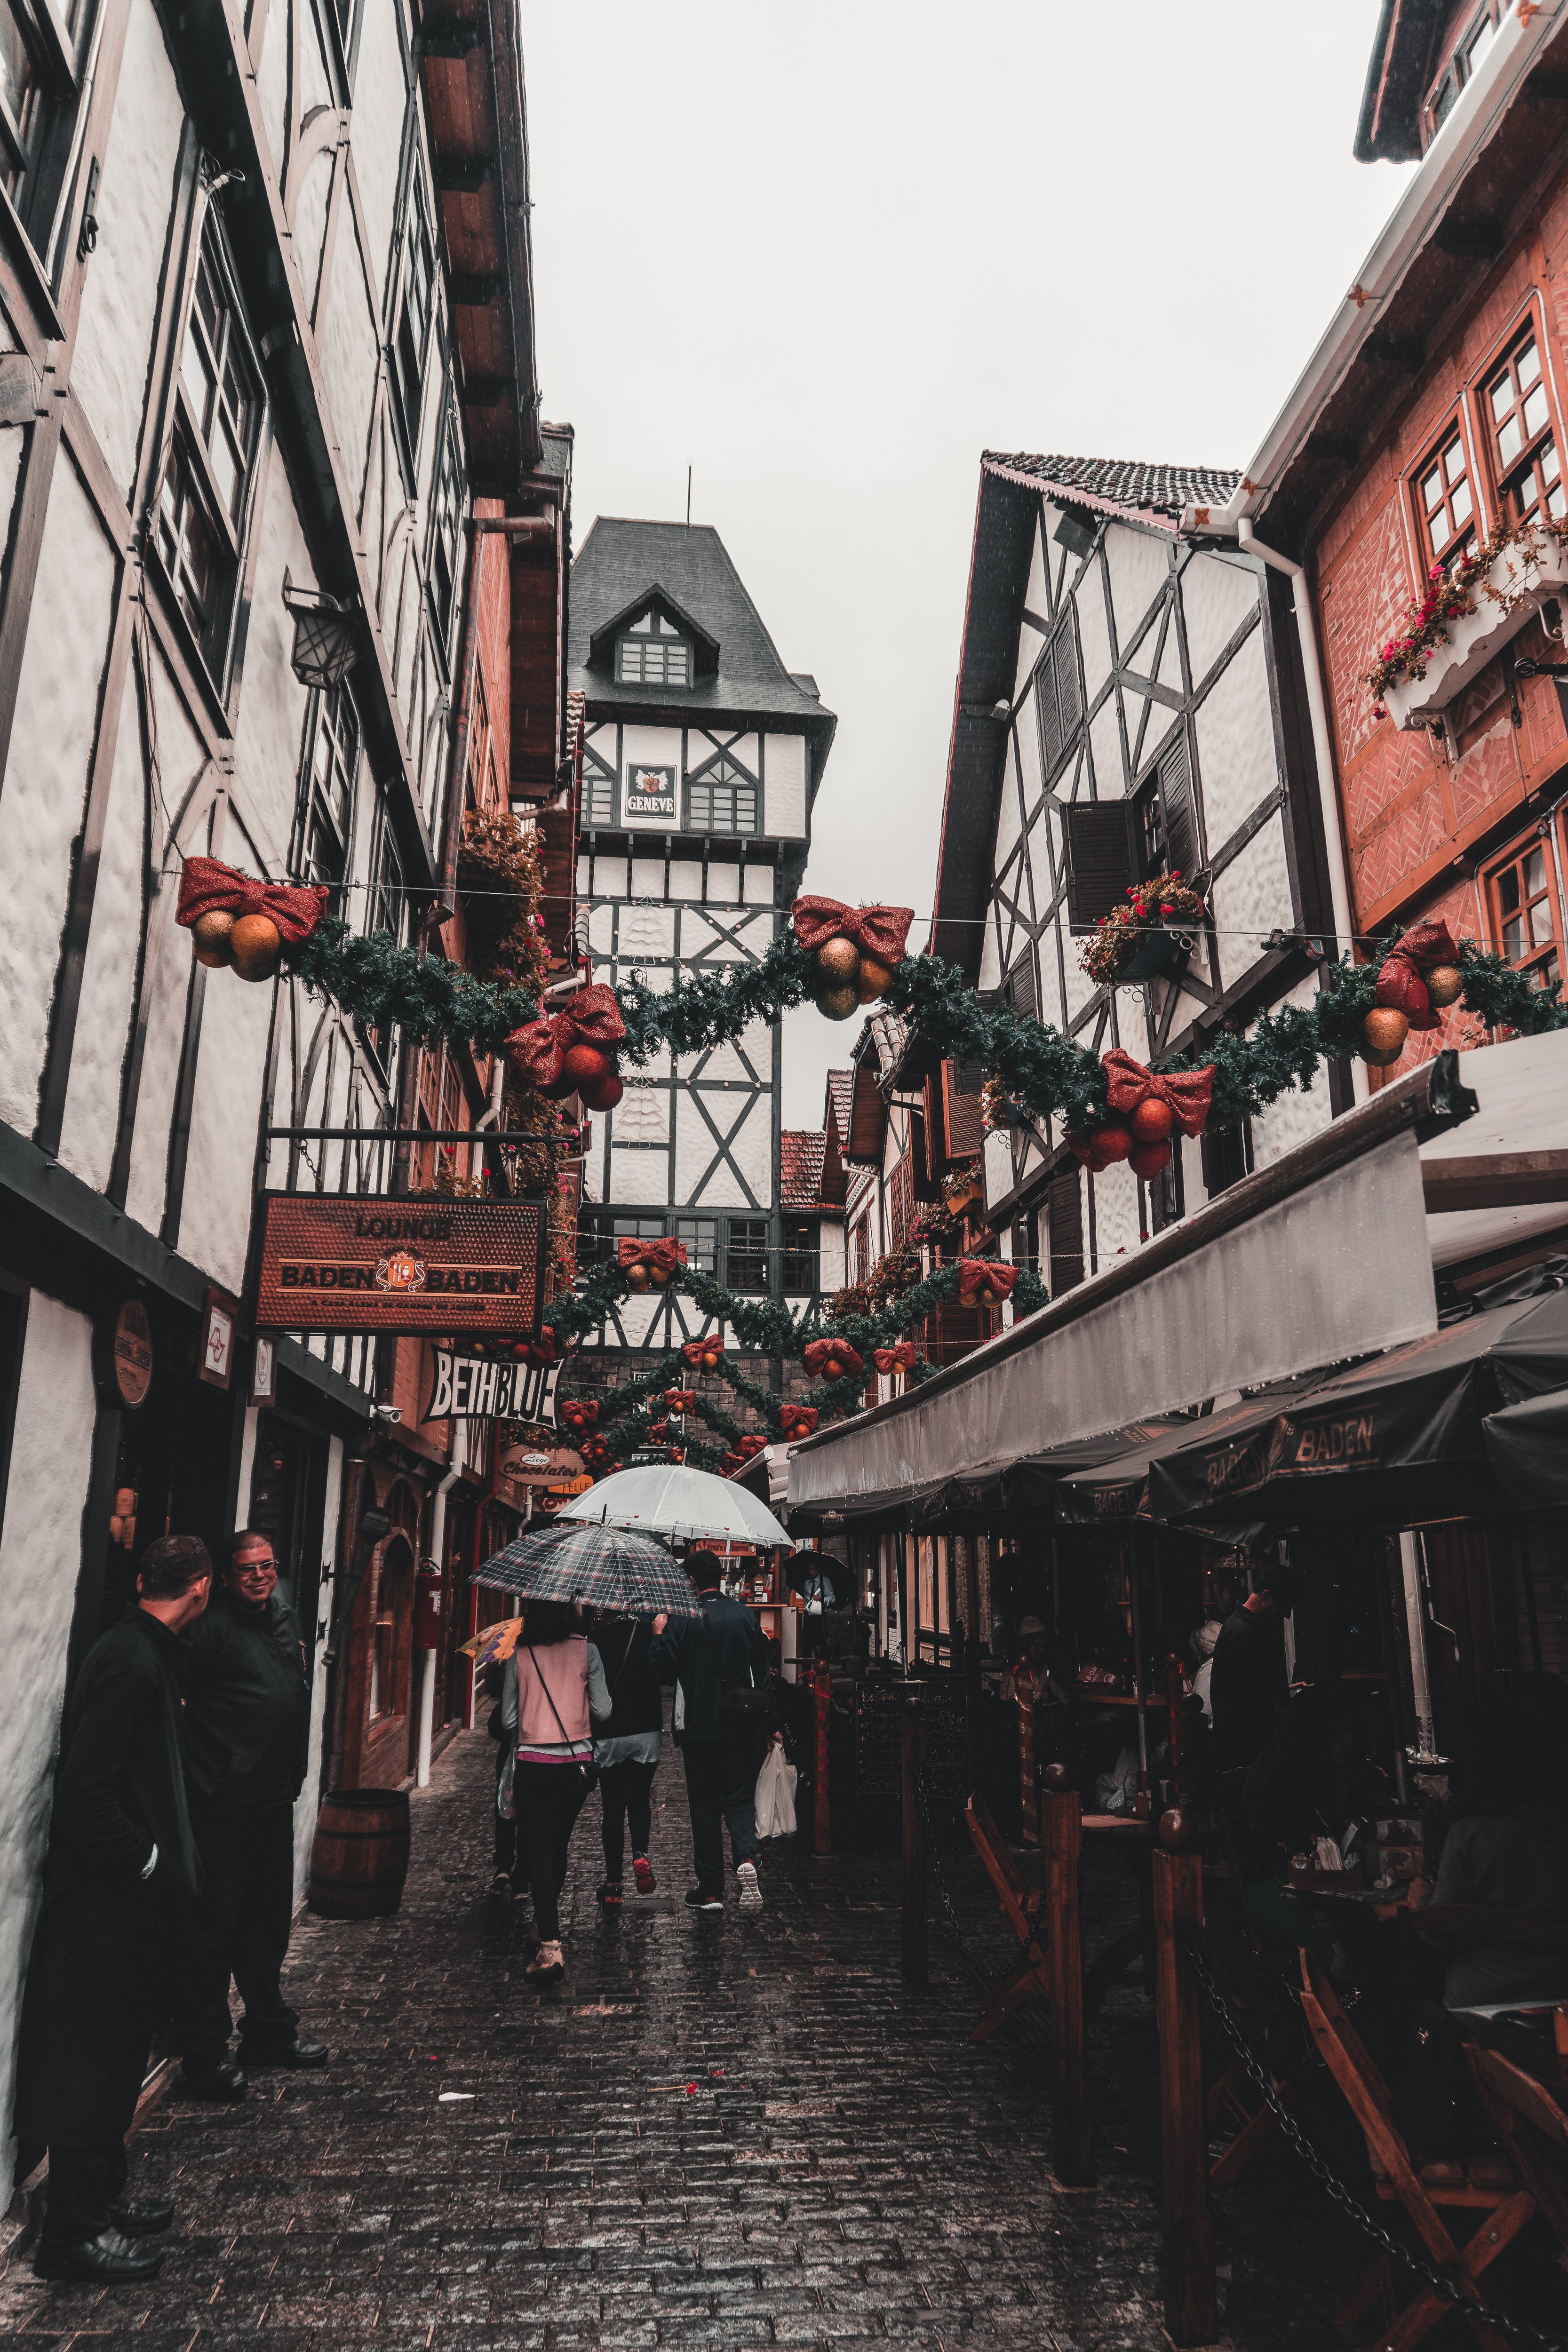 Photo of People Walking Across the Alley